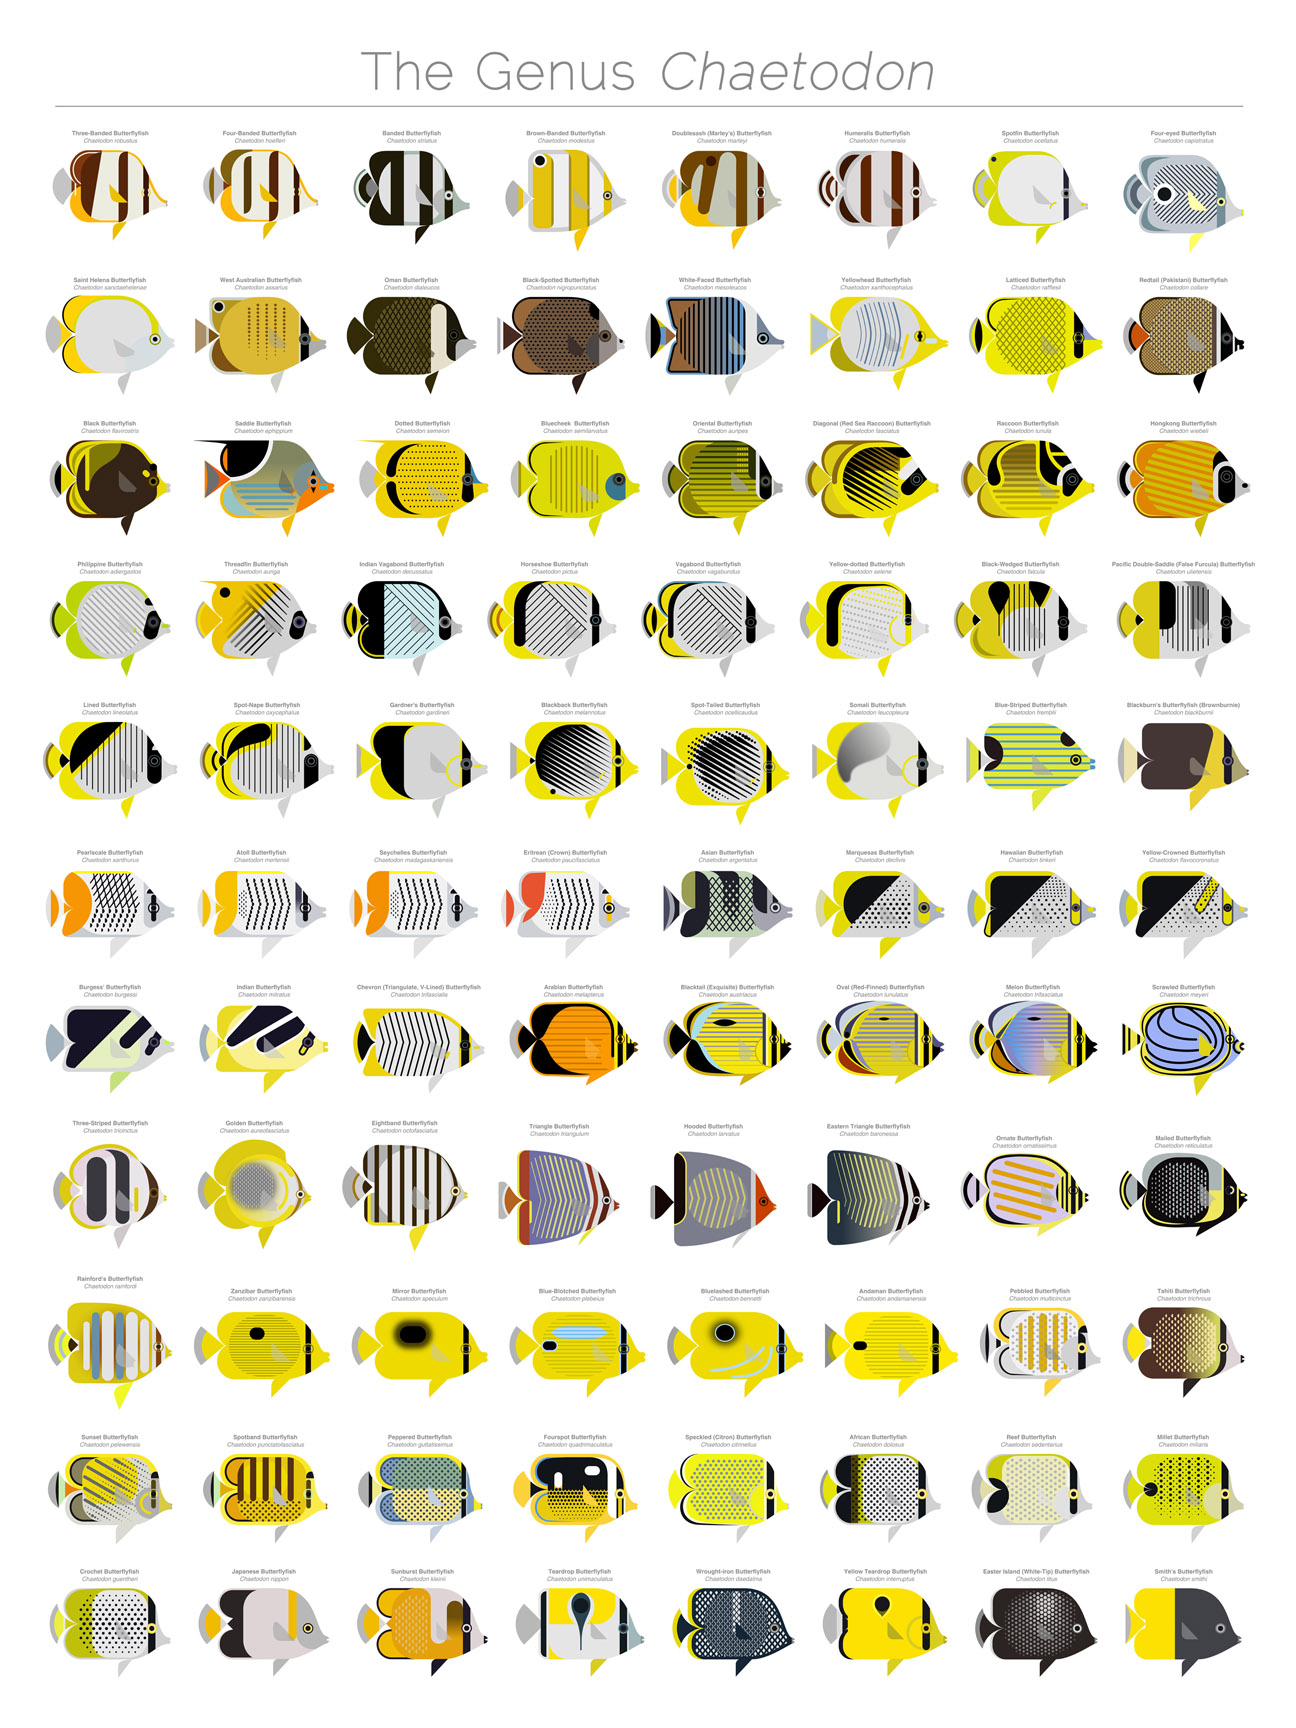 butterflyfishes - Chaetodon - illustration